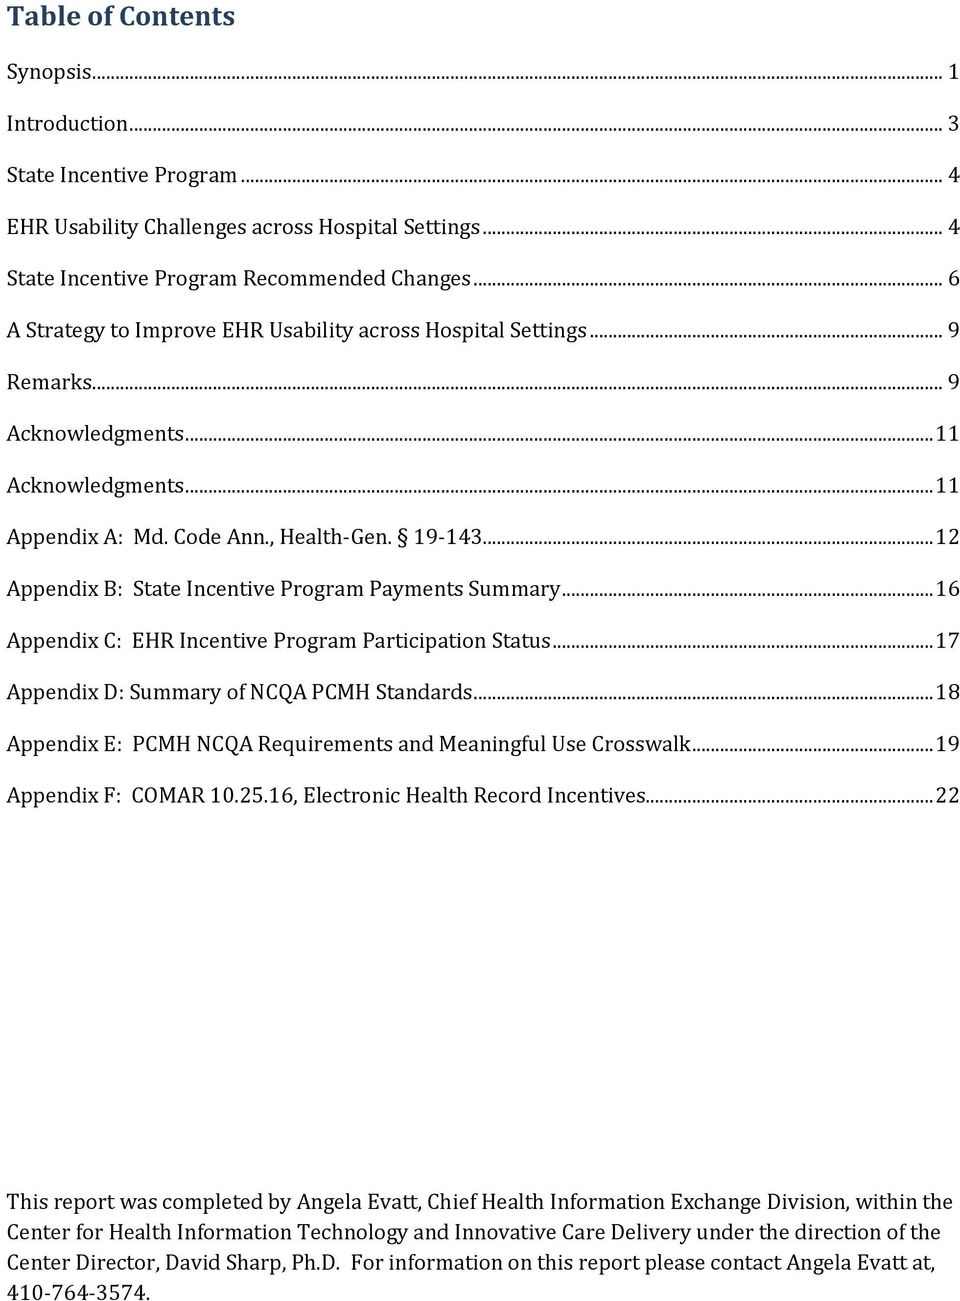 .. 12 Appendix B: State Incentive Program Payments Summary... 16 Appendix C: EHR Incentive Program Participation Status... 17 Appendix D: Summary of NCQA PCMH Standards.